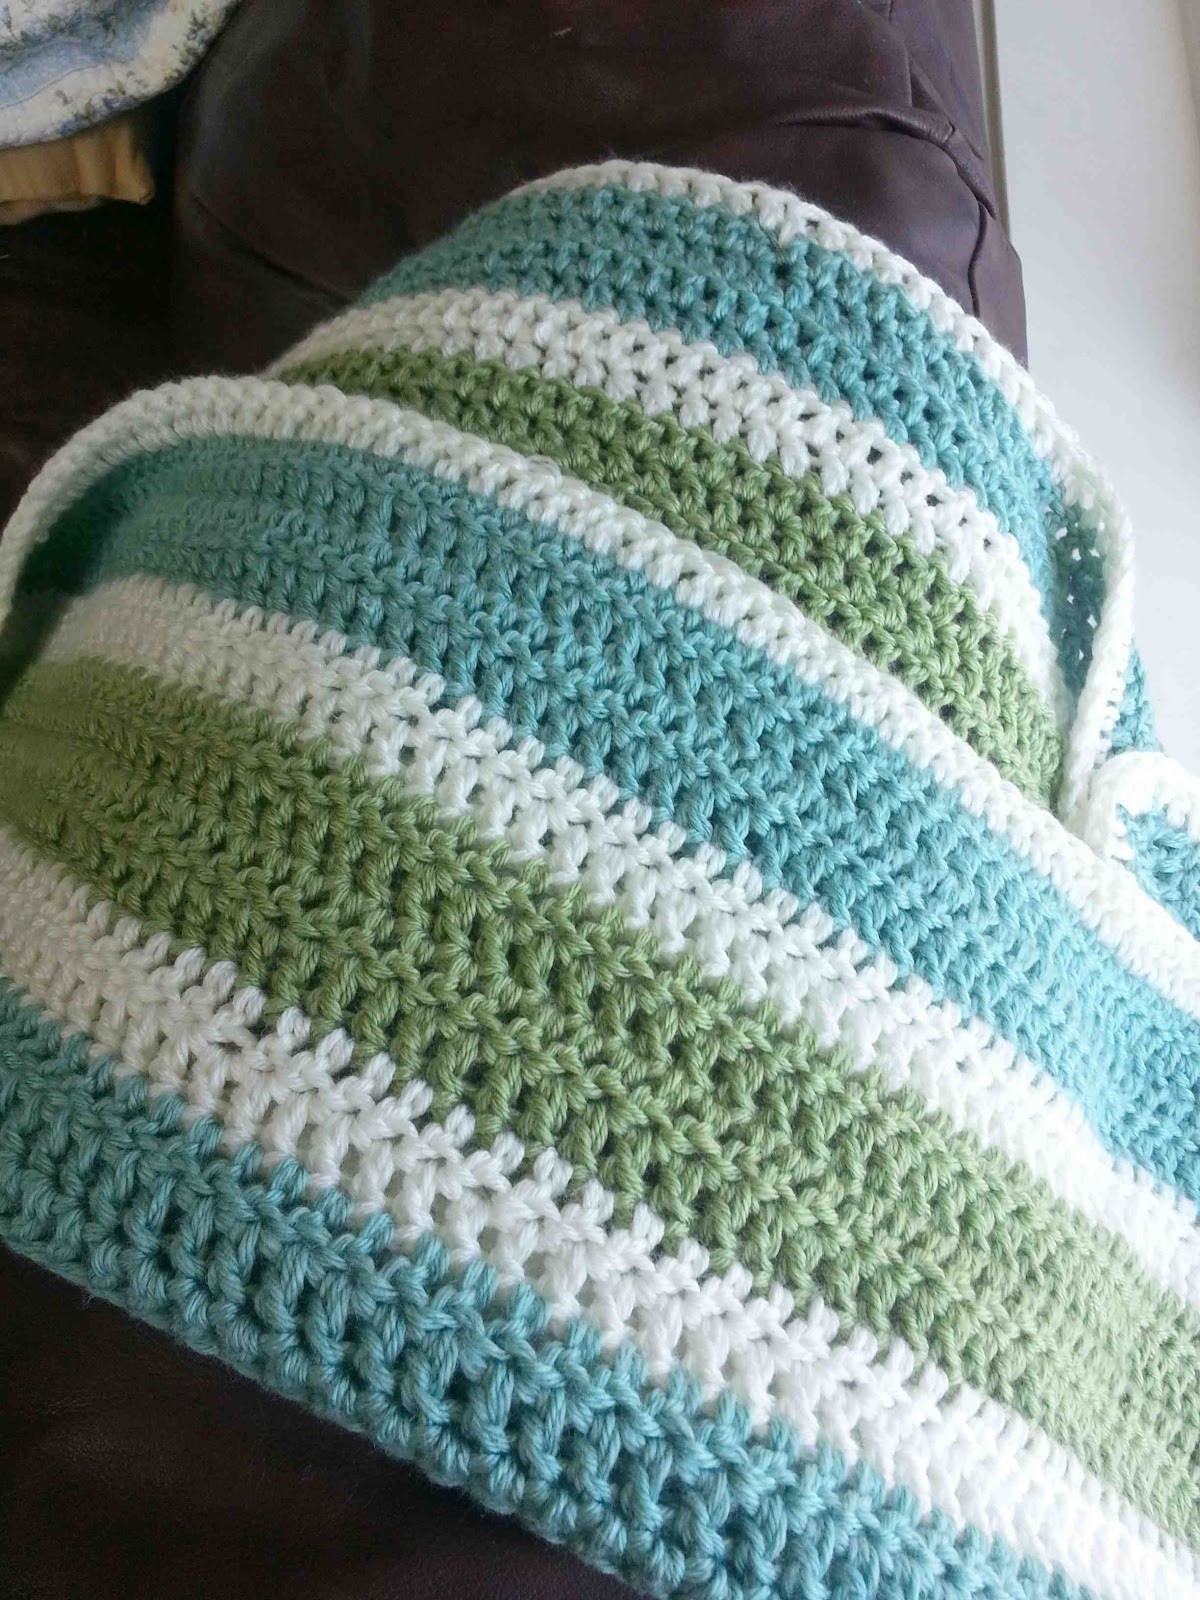 Striped Crochet Baby Blanket Elegant Made by Me D with You Striped Crochet Afghan Of Amazing 50 Photos Striped Crochet Baby Blanket